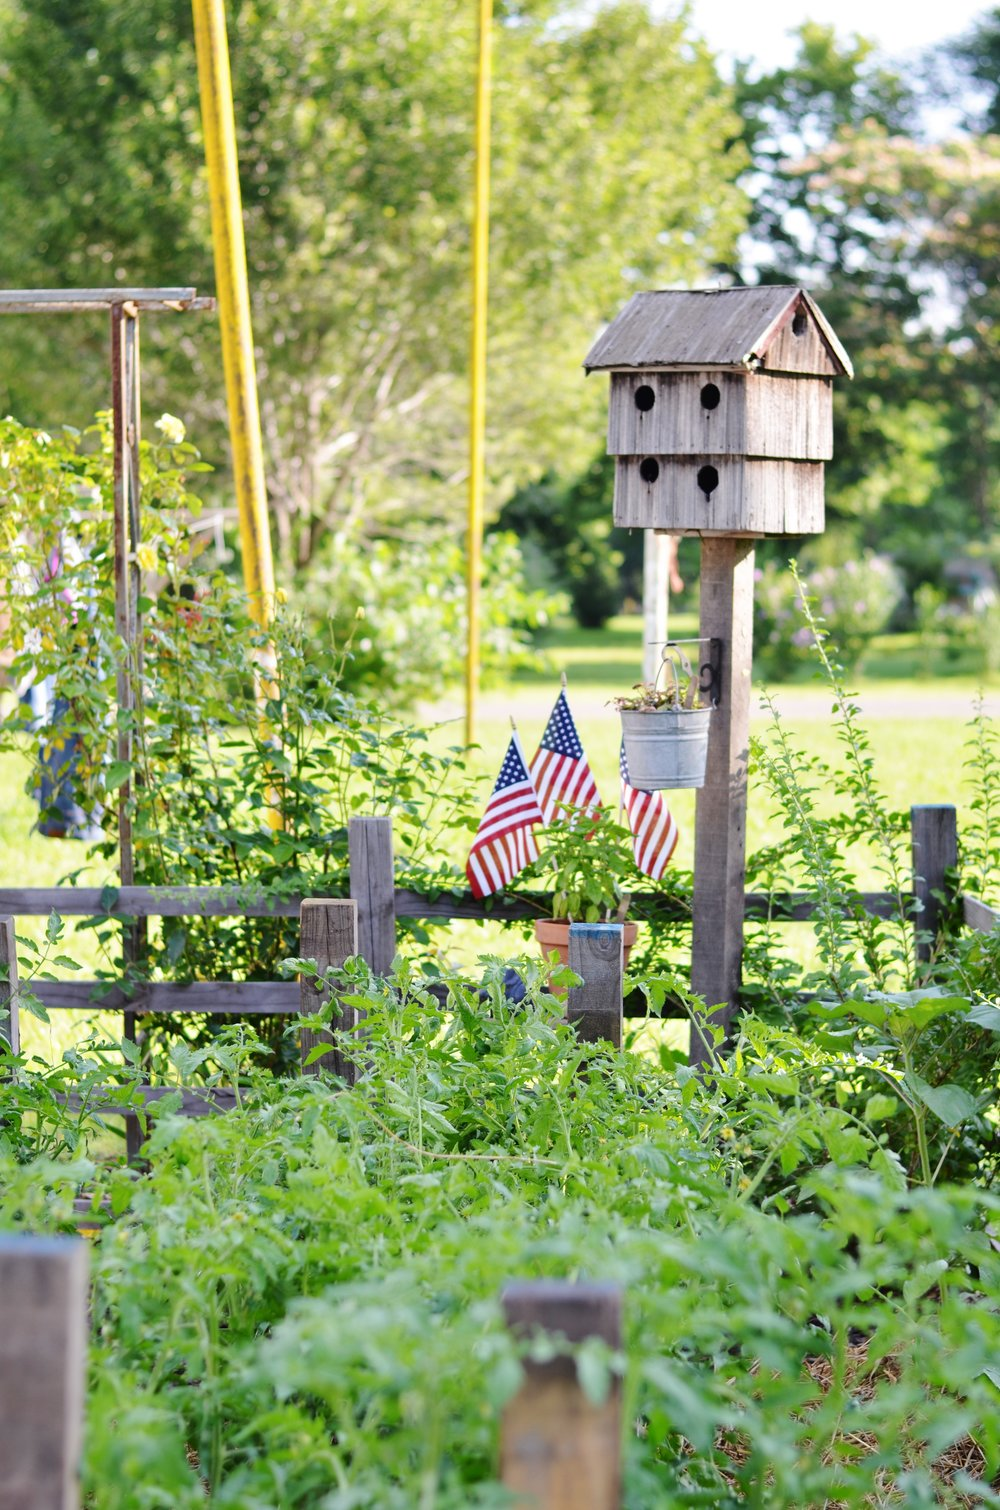 birdhouse garden vegetables flowers heirloom seeds